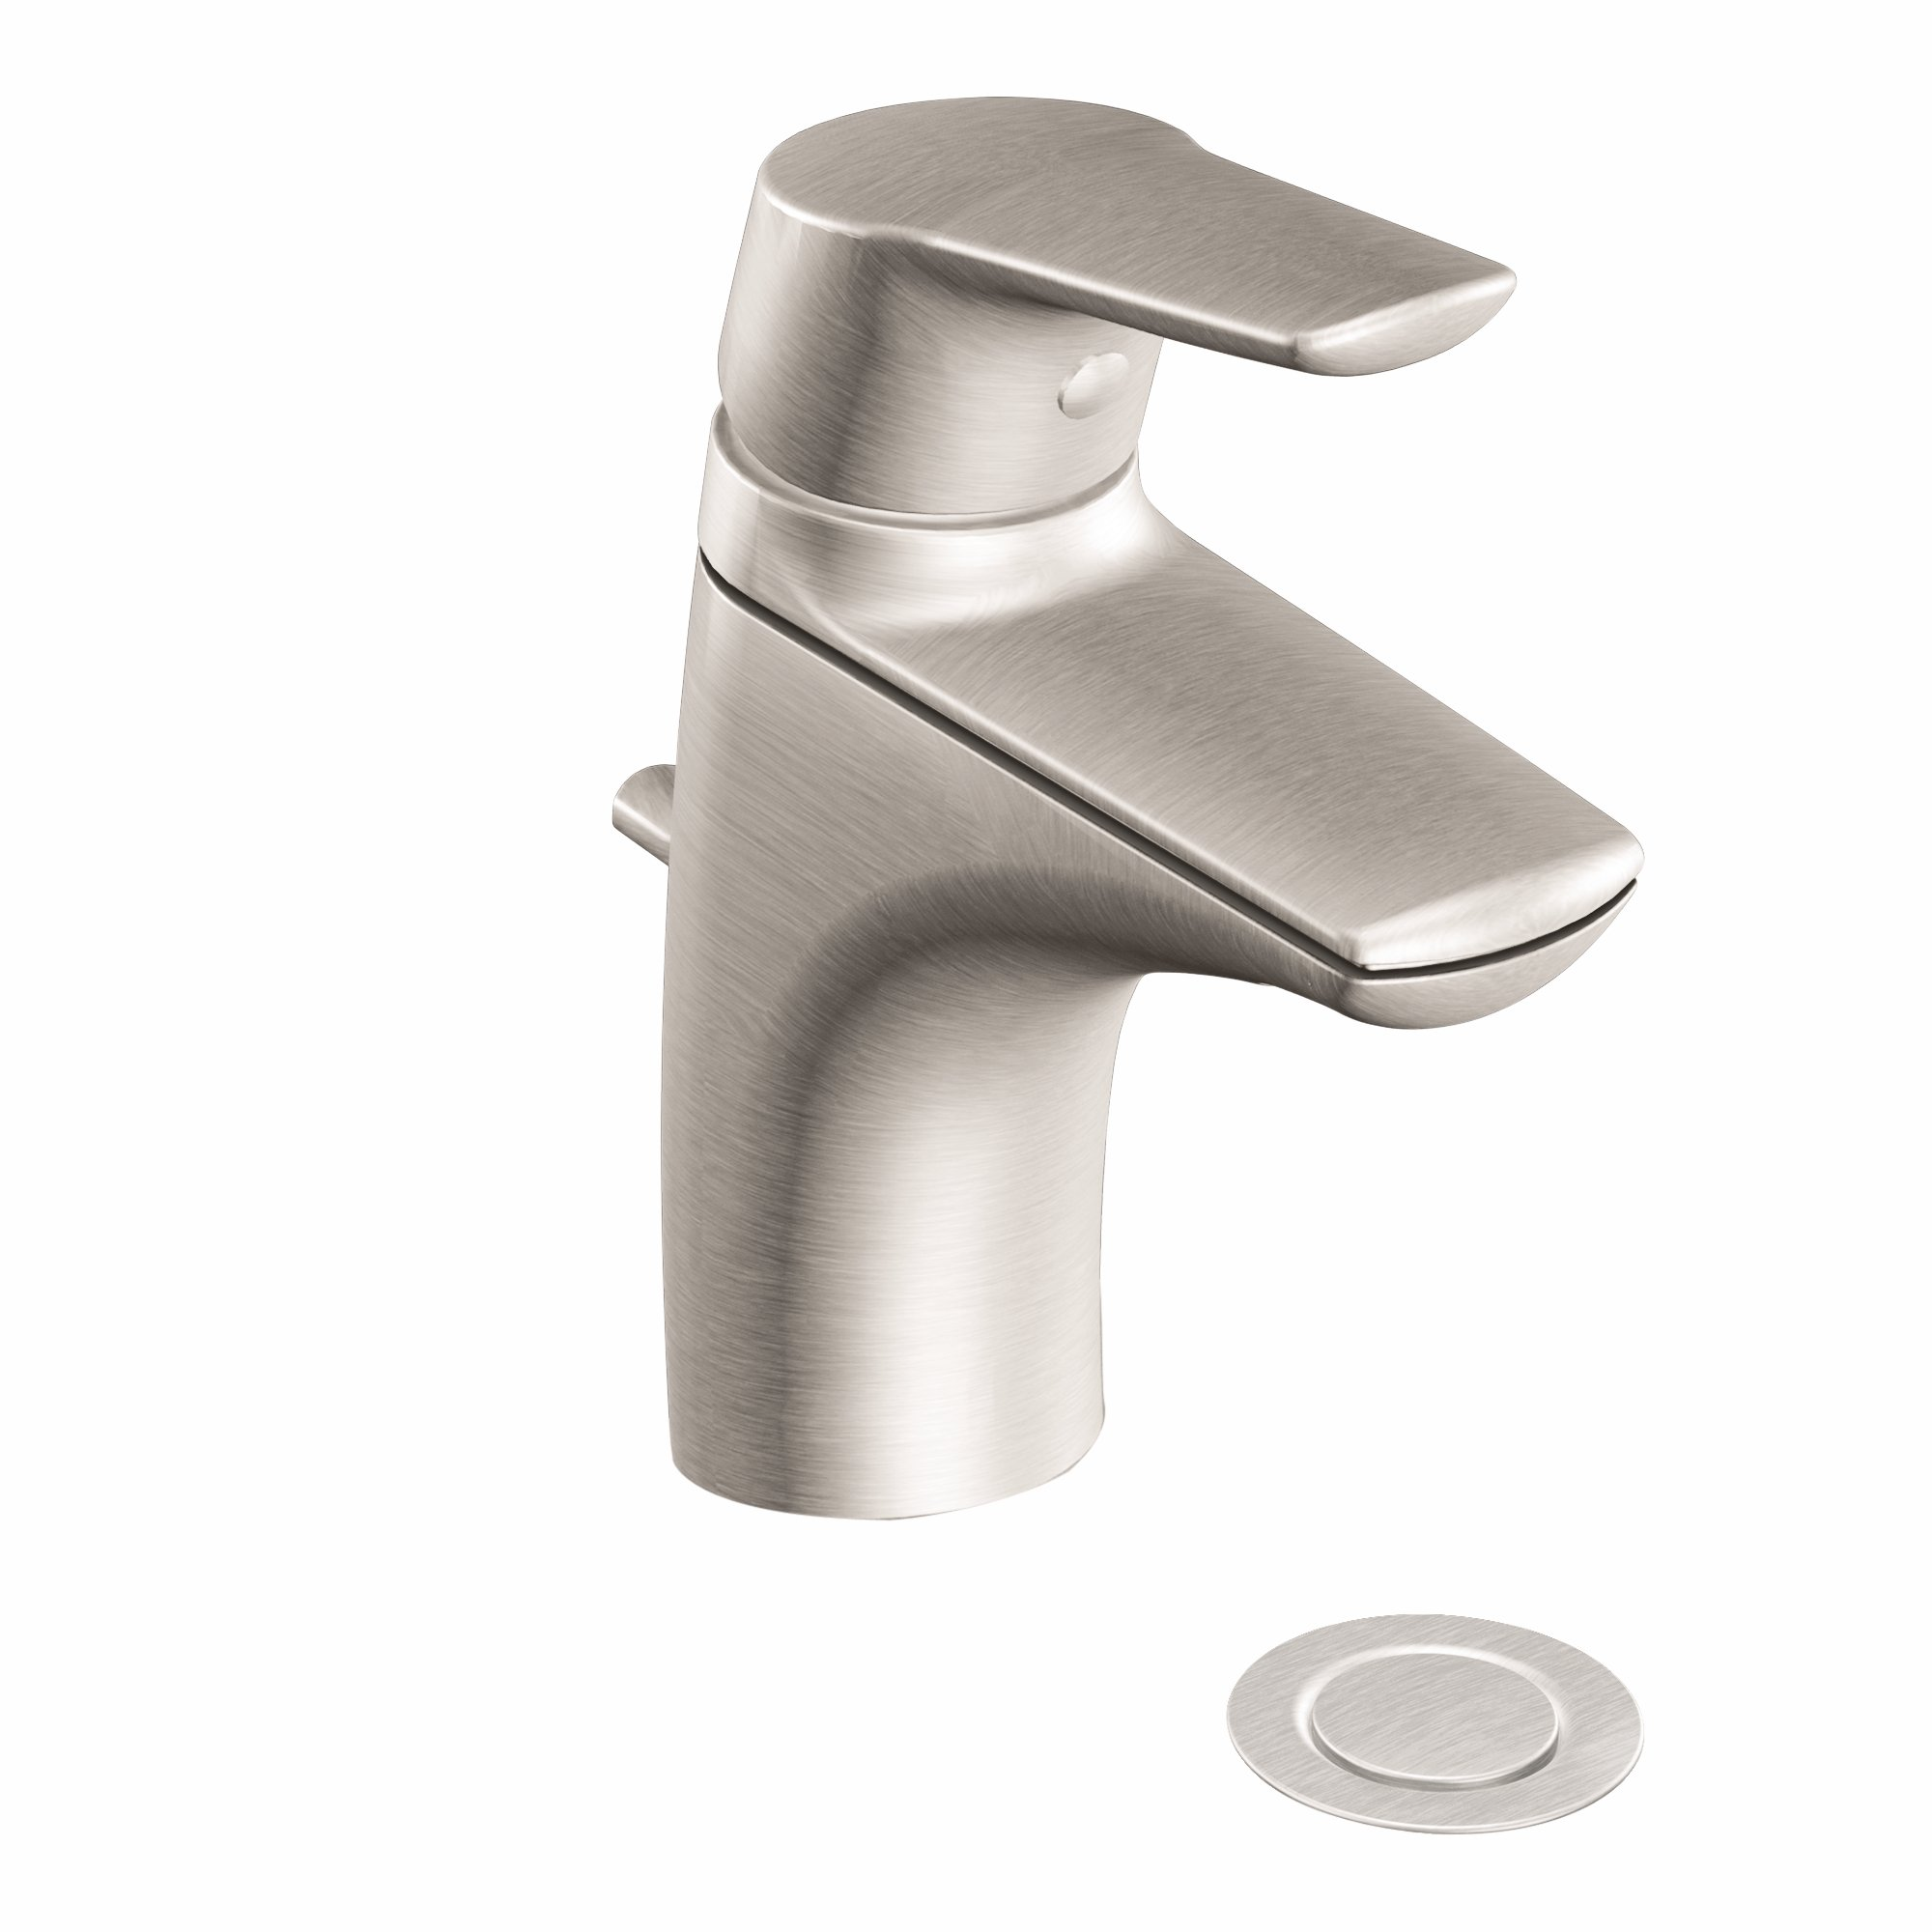 Moen 6810BN Method One-Handle Low-Arc Bathroom Faucet with Drain Assembly, Brushed Nickel by Moen